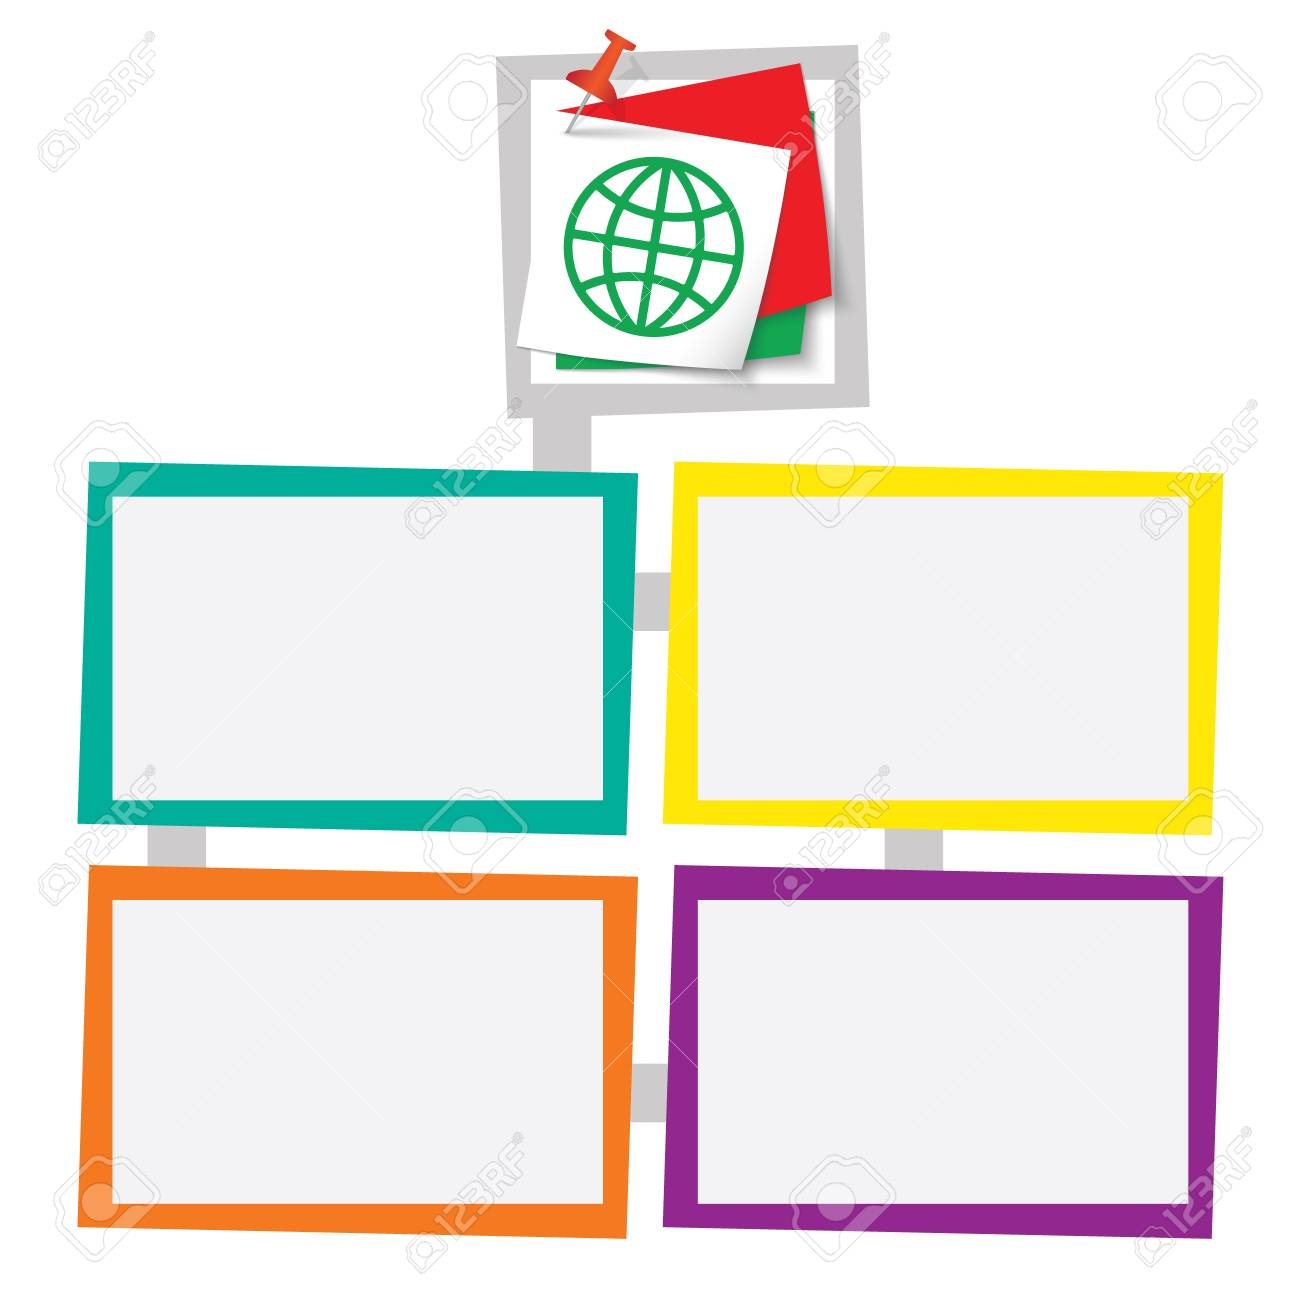 Four Colored Frames For Your Text With Pushpin And Globe Icon ...